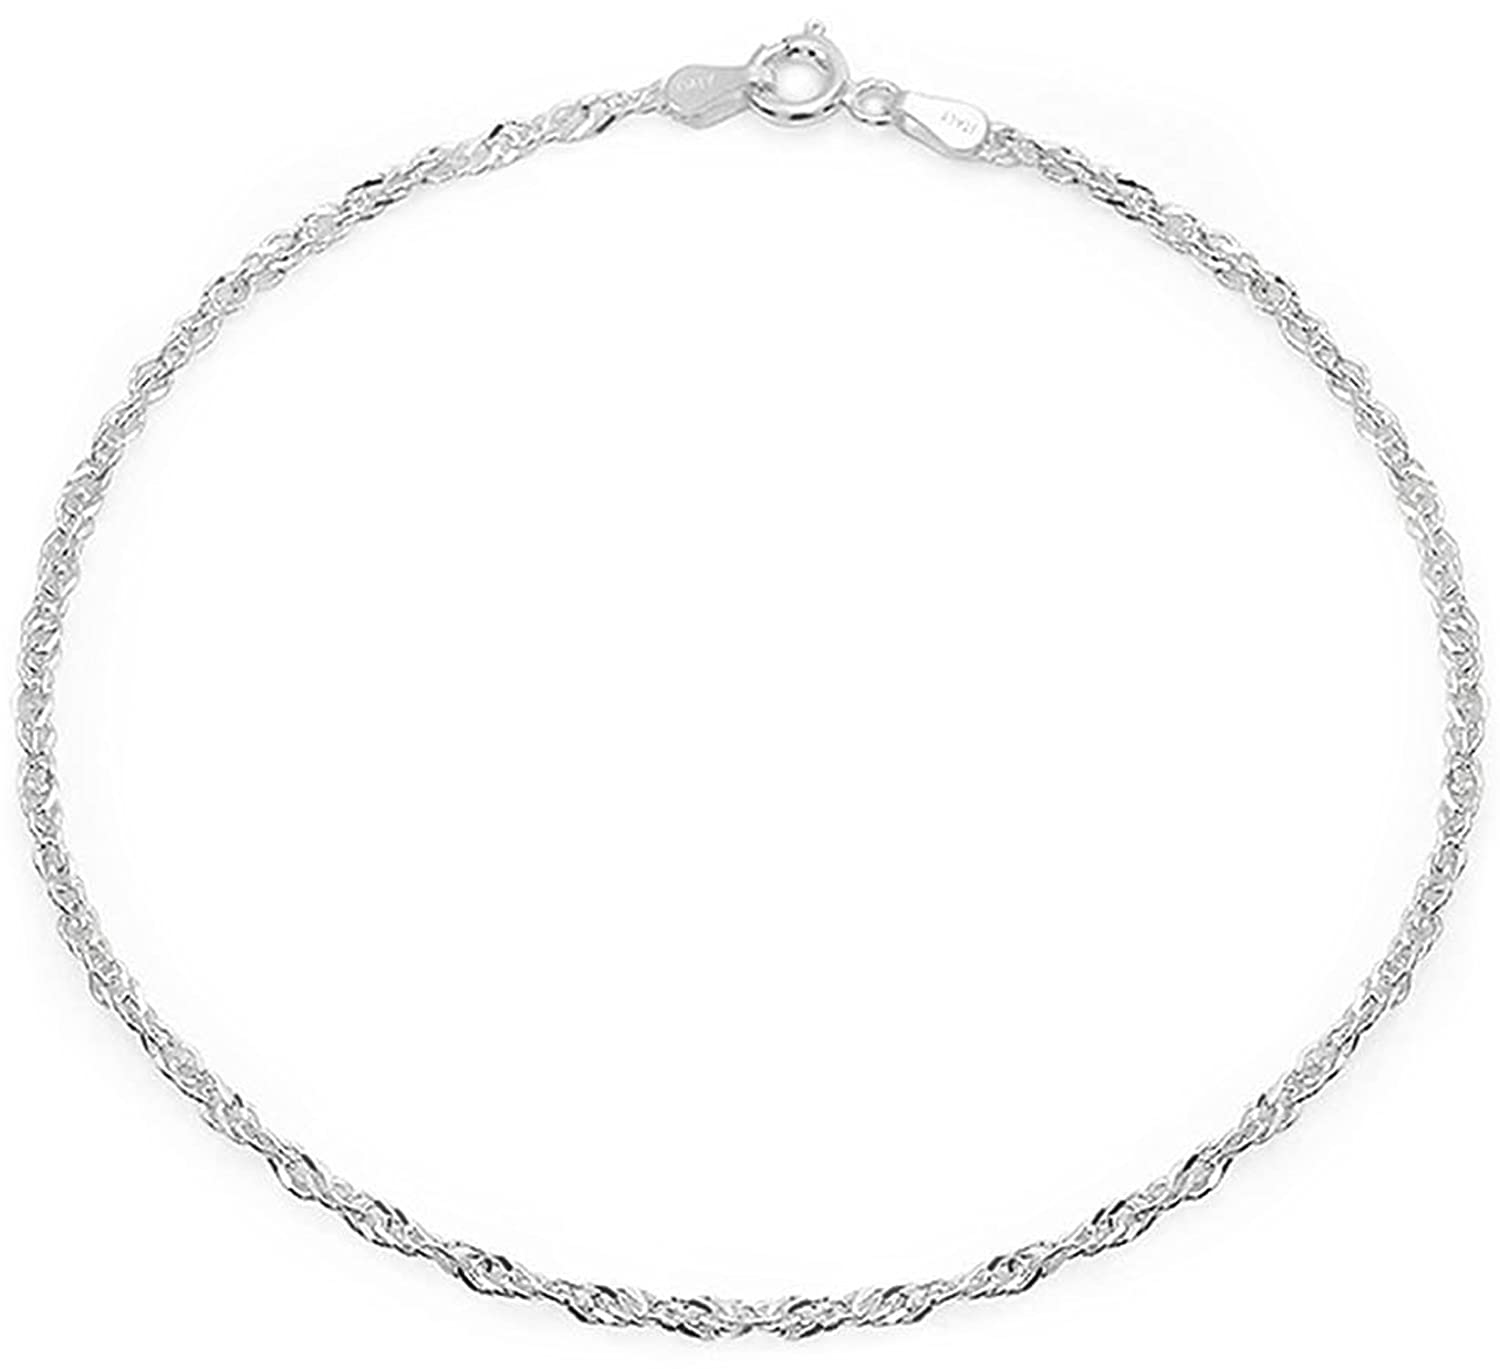 sweetiee triple dp platinum ankle chain anklet layered sterling silver bracelet anklets beaded inch double